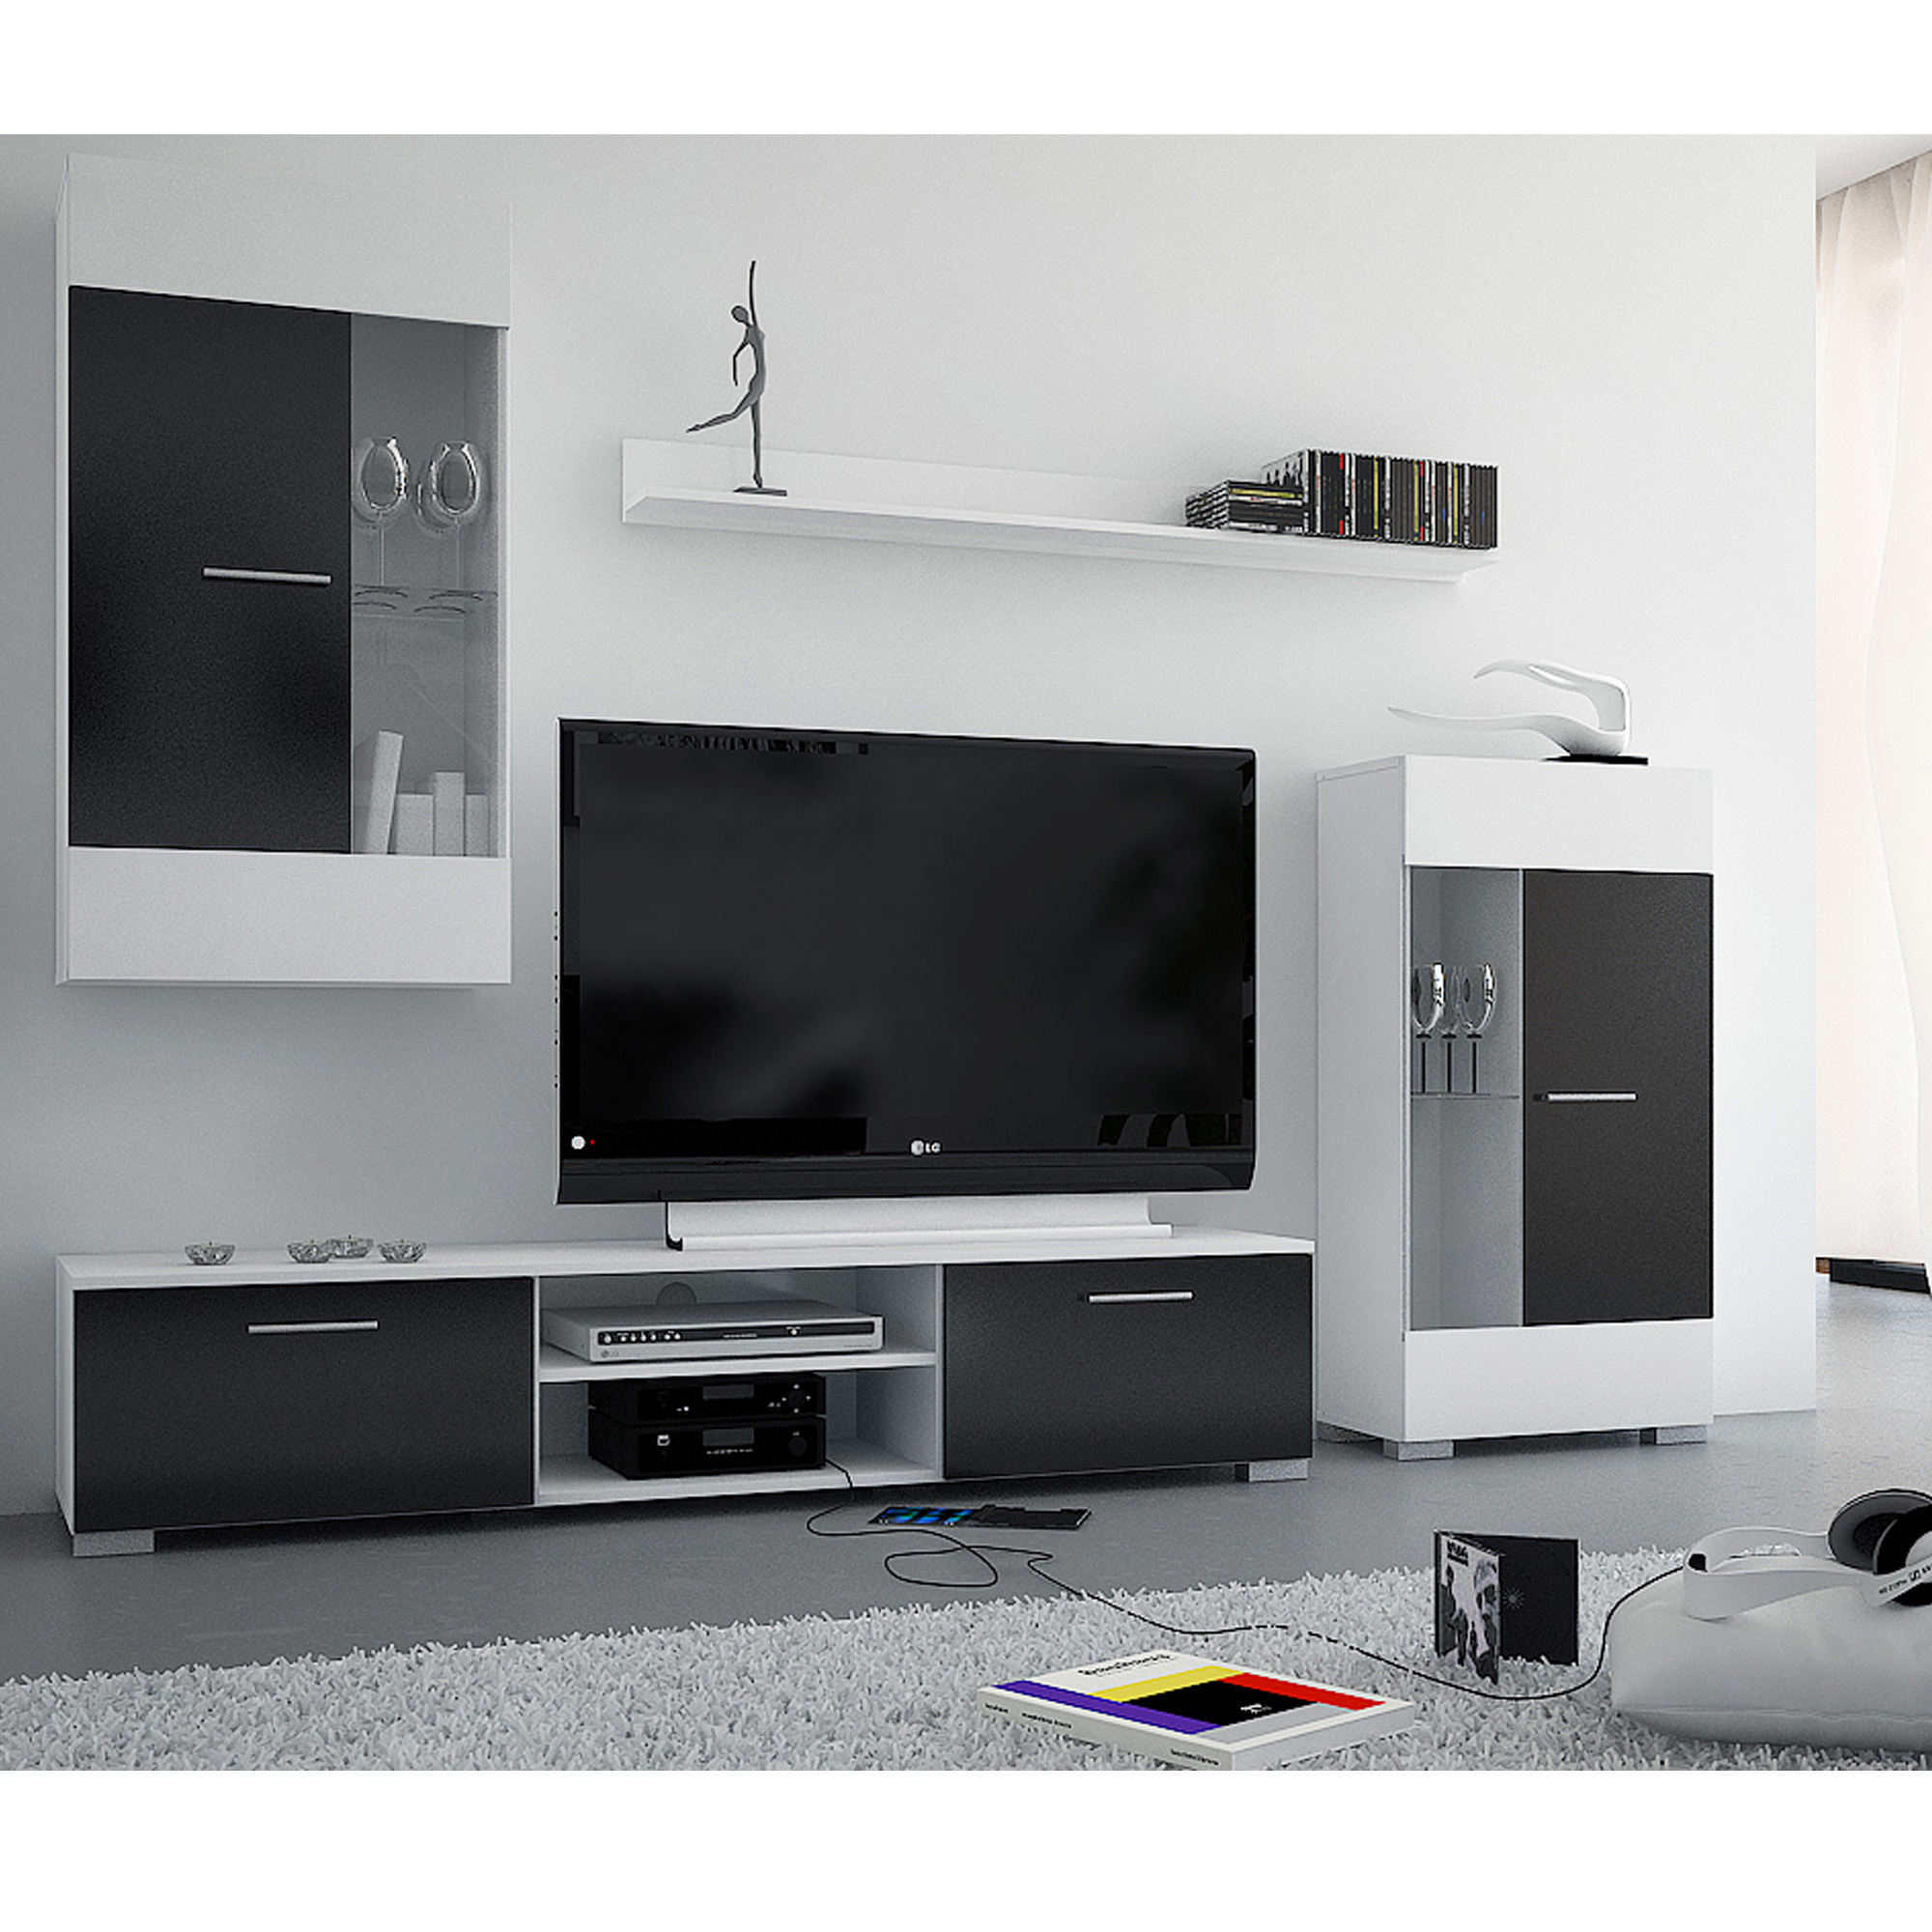 meuble tv la maison de valerie ensemble meuble tv bravo. Black Bedroom Furniture Sets. Home Design Ideas